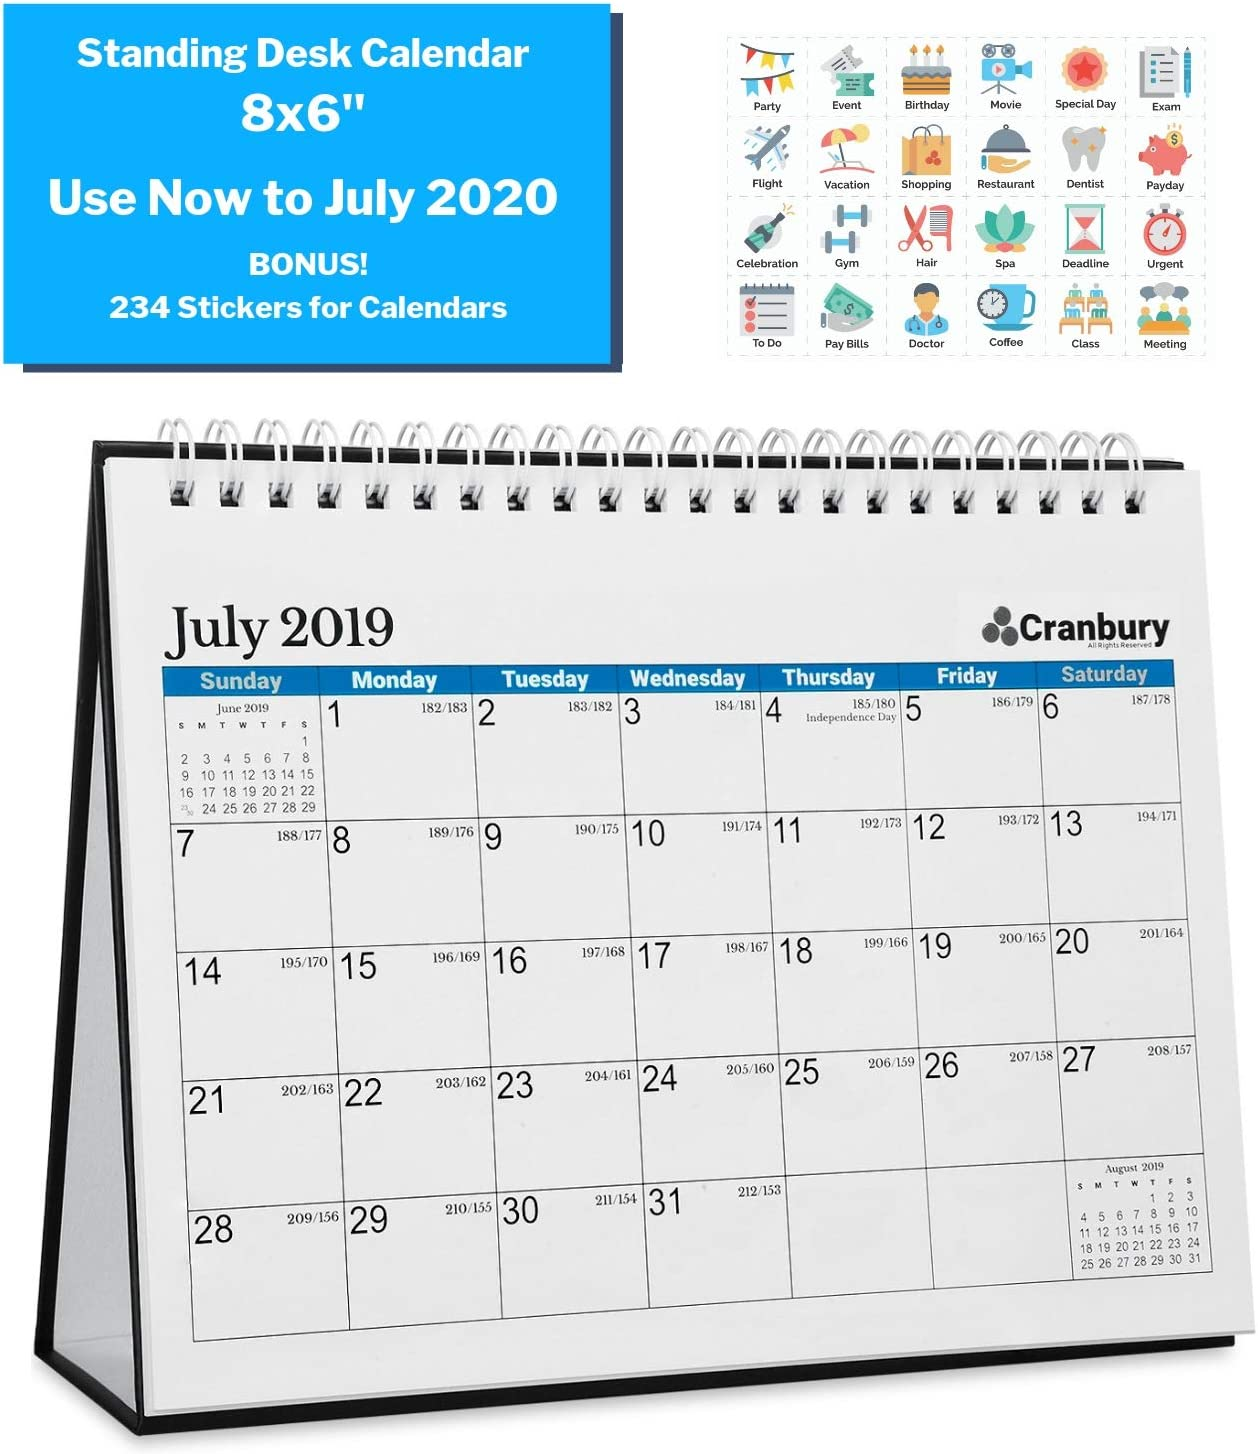 Small School Year Calendar 2019-2020 (8x6, Blue) Use to July 2020, Back to School Double-Sided Desktop Calendar, Tent Standing Easel Flip Calendar, Counter or Table Top Academic Calendars